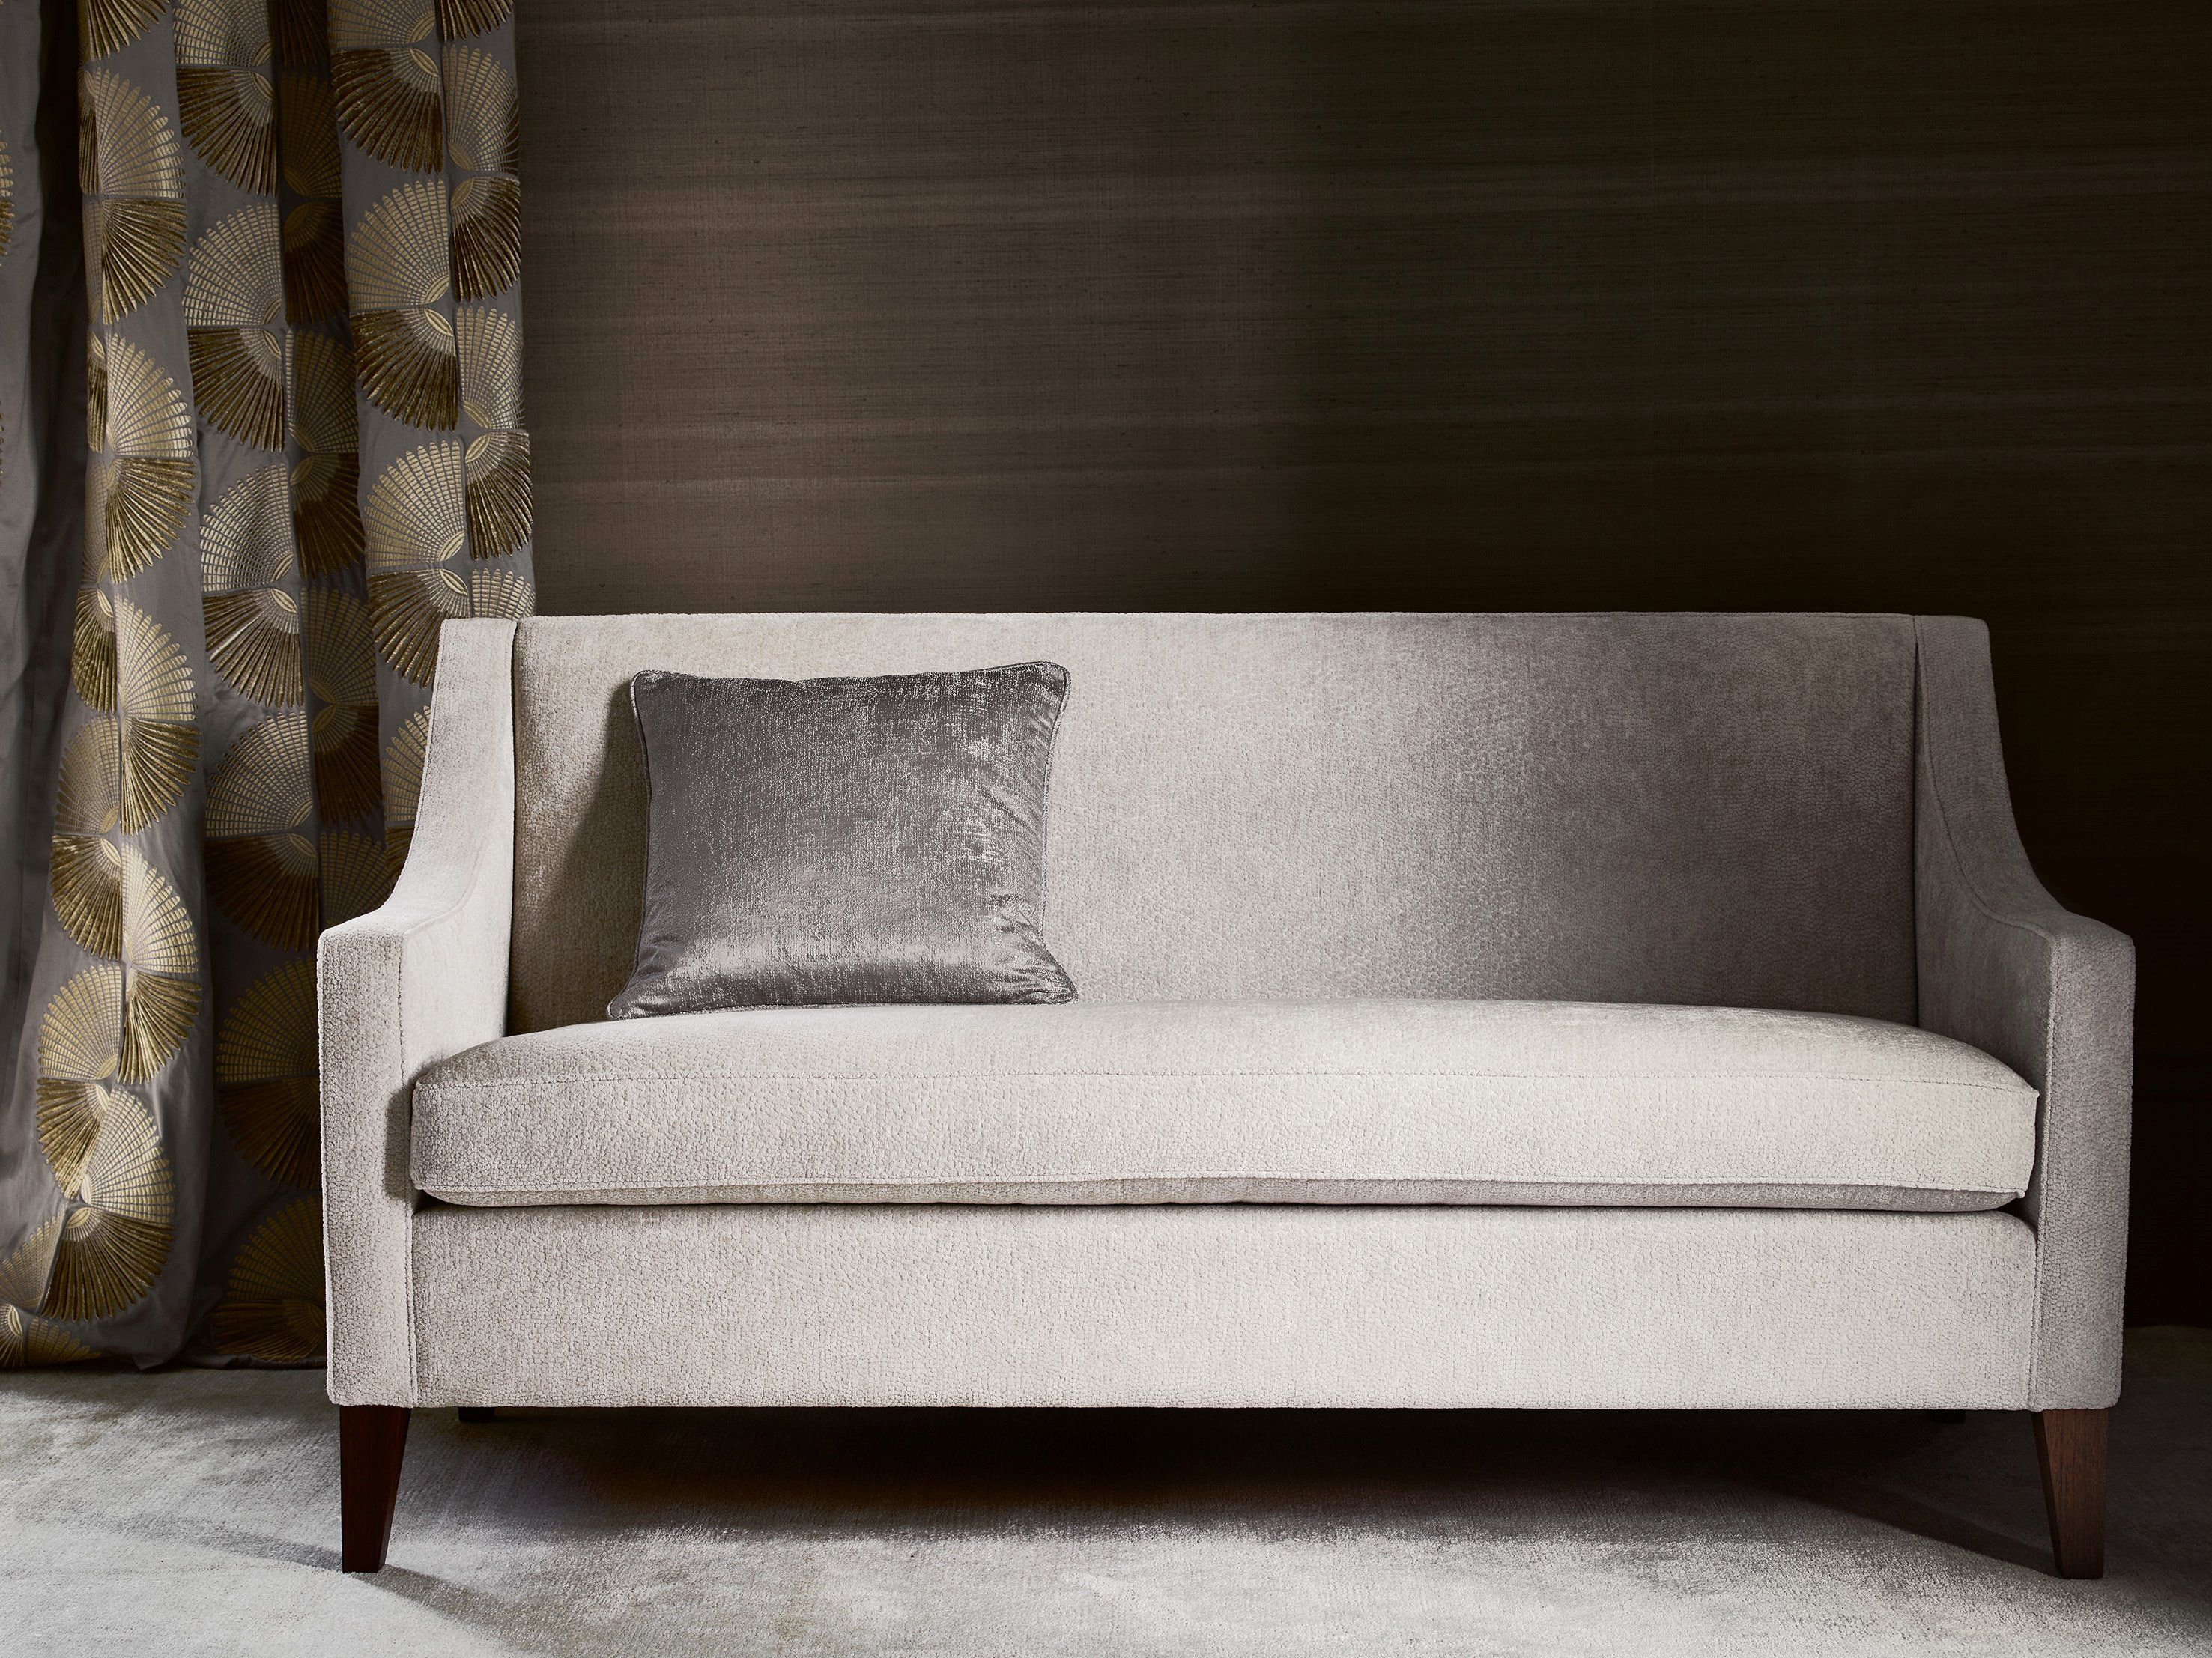 Sofa in Foxtrot ivory and cushion in Indra silver by Jane